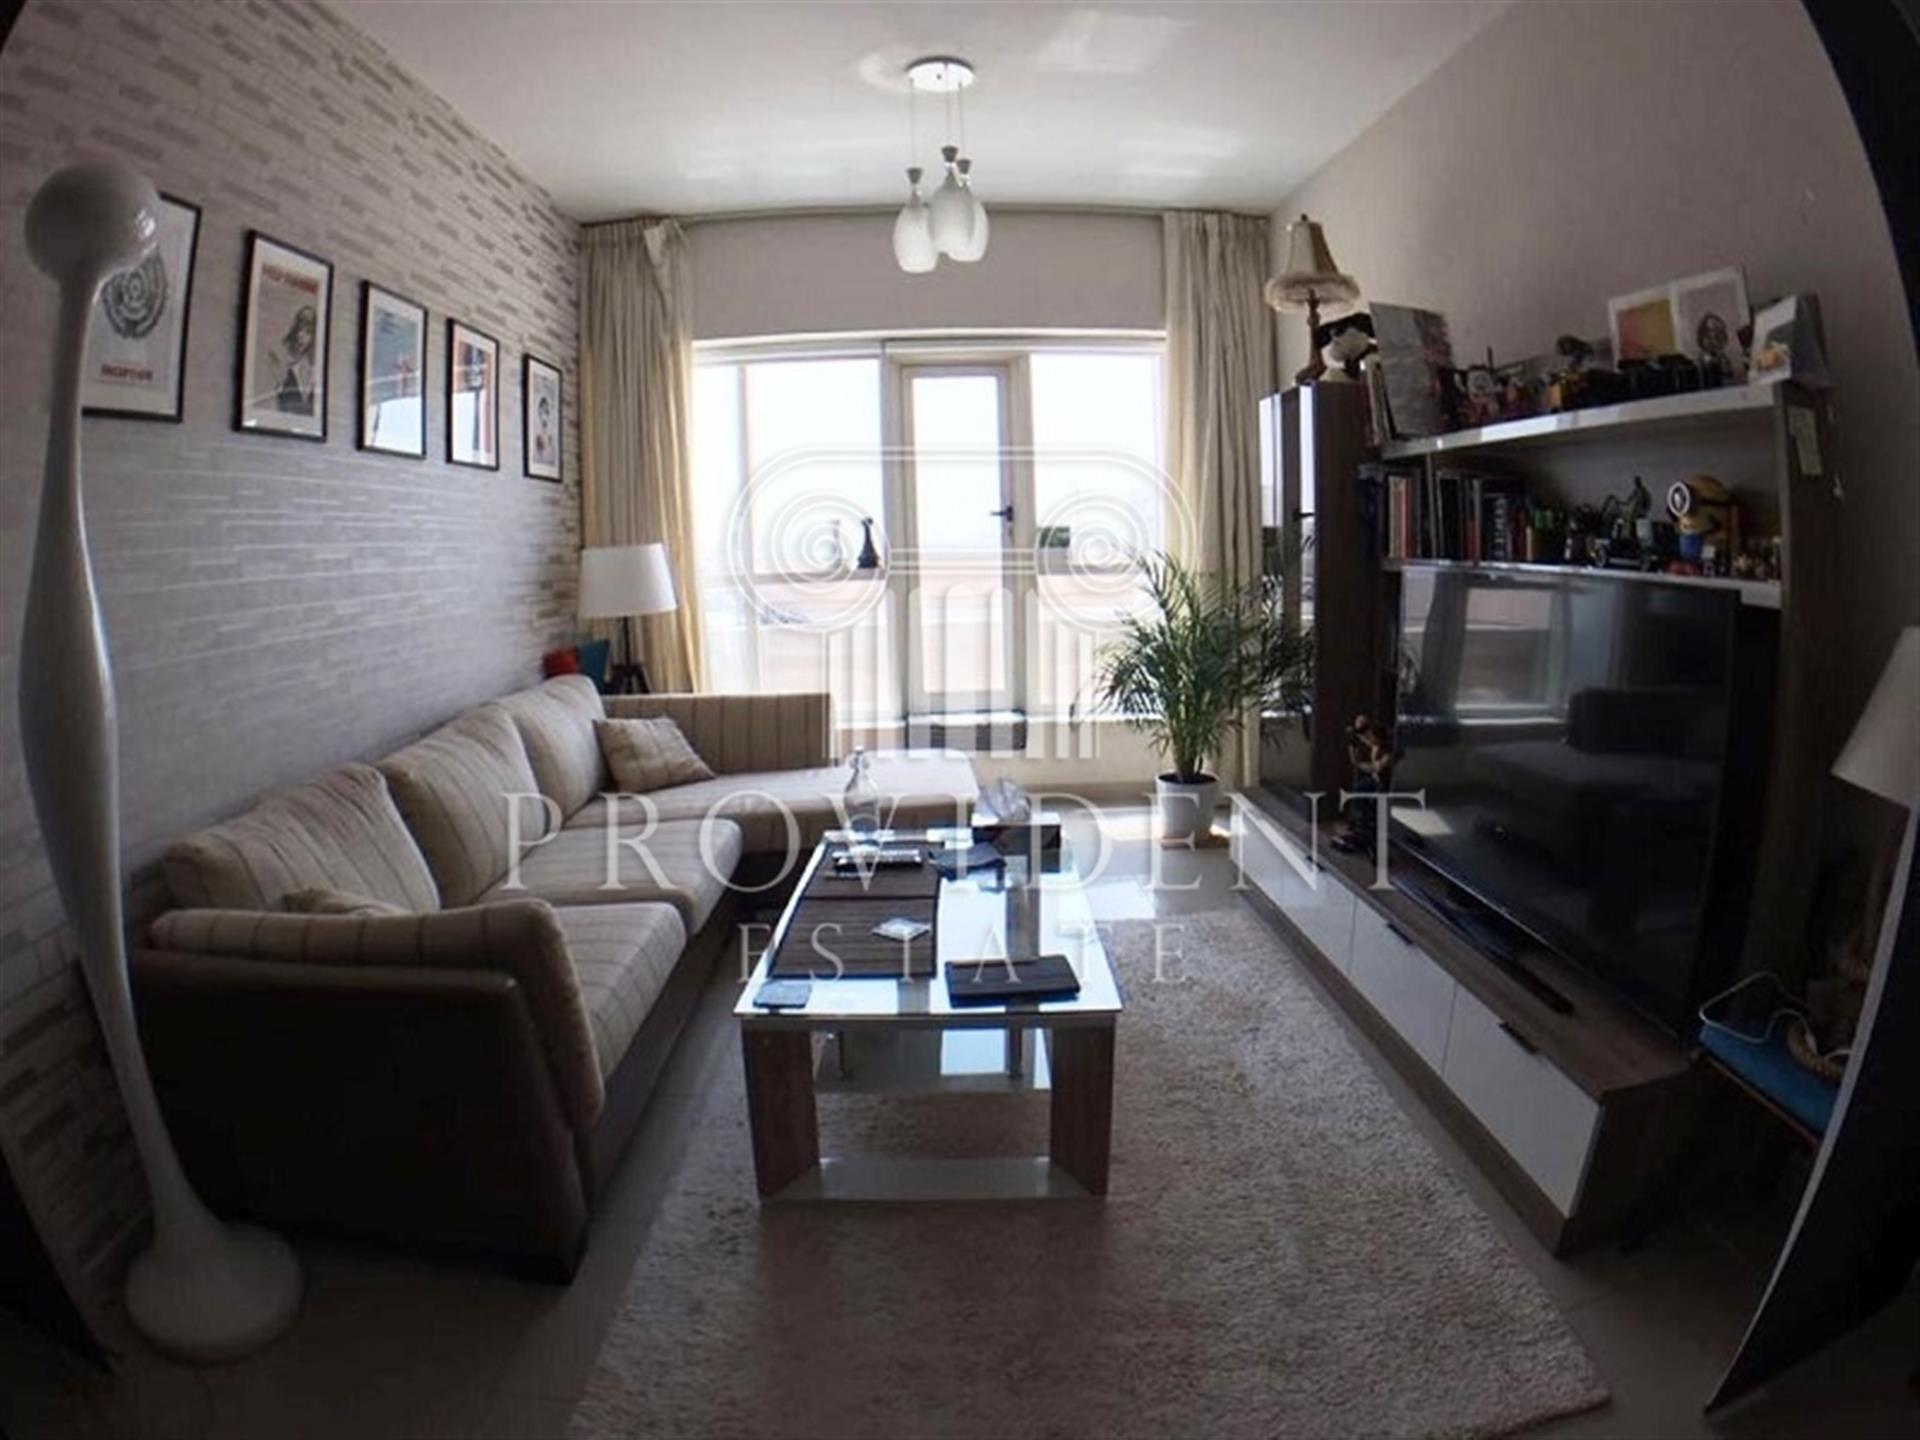 Property - Apartment for rent in Jumeirah Lake Towers- Dubai - Lake Point